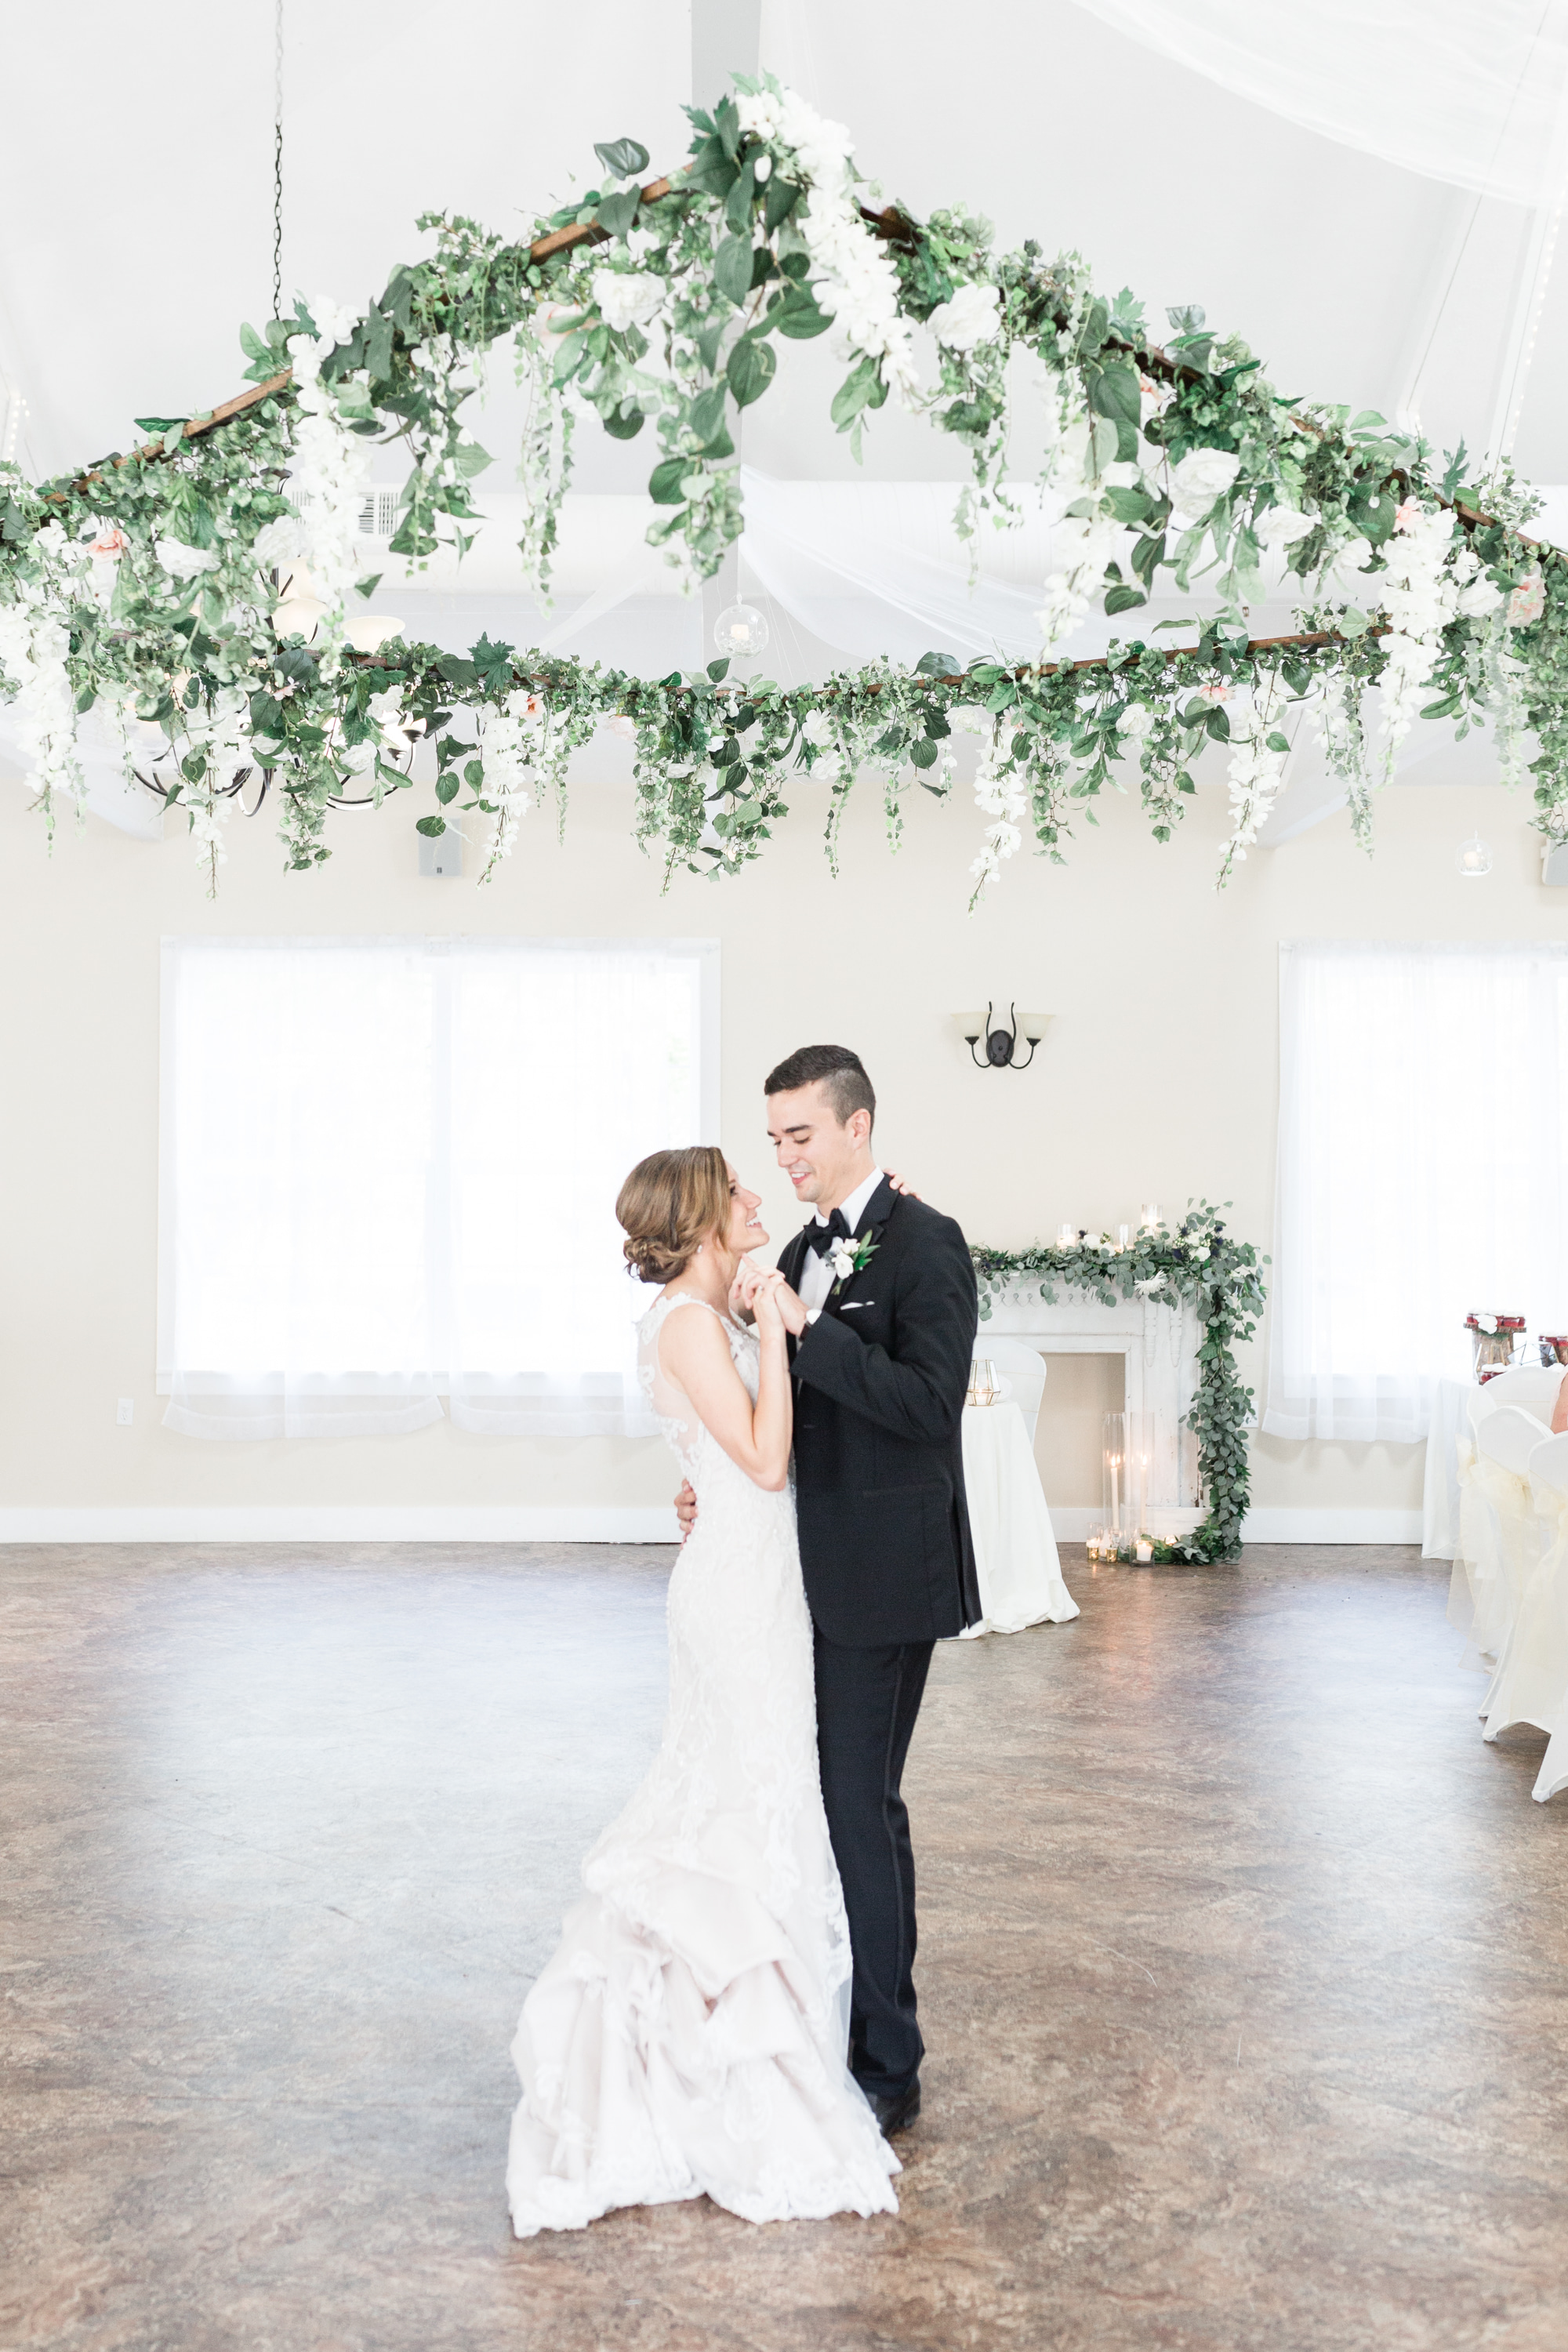 Bride and groom share first dance under DIY hanging floral wreath at Pittsburgh wedding planned by Exhale Events. Find more wedding inspiration at exhale-events.com!